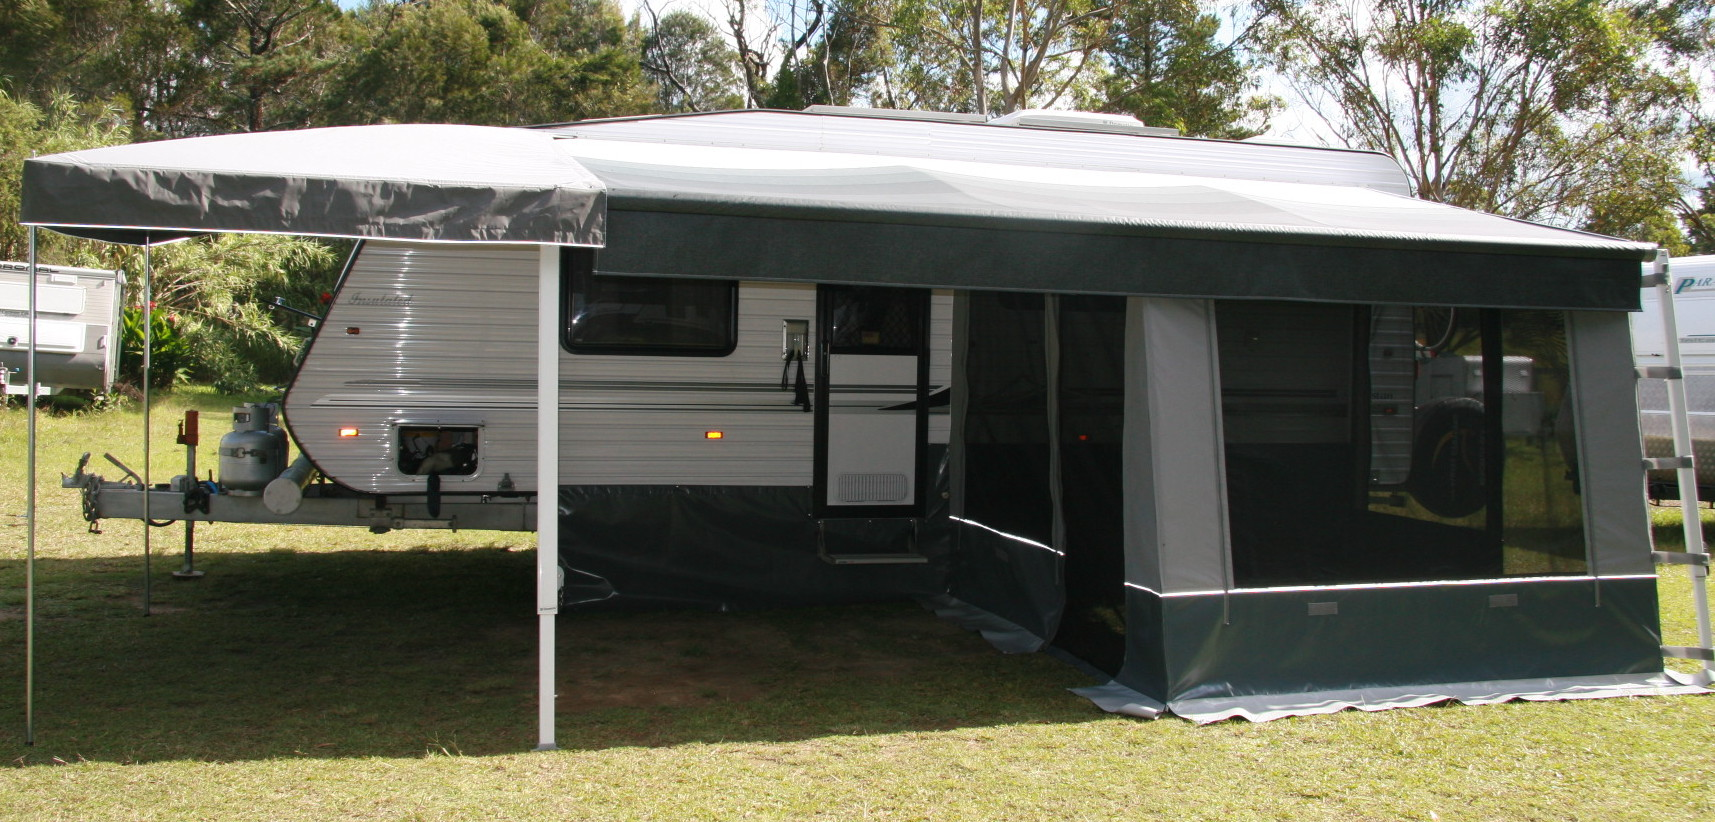 DIY Rollout Awning Walls Measure Sheet Caravan Draft Skirt